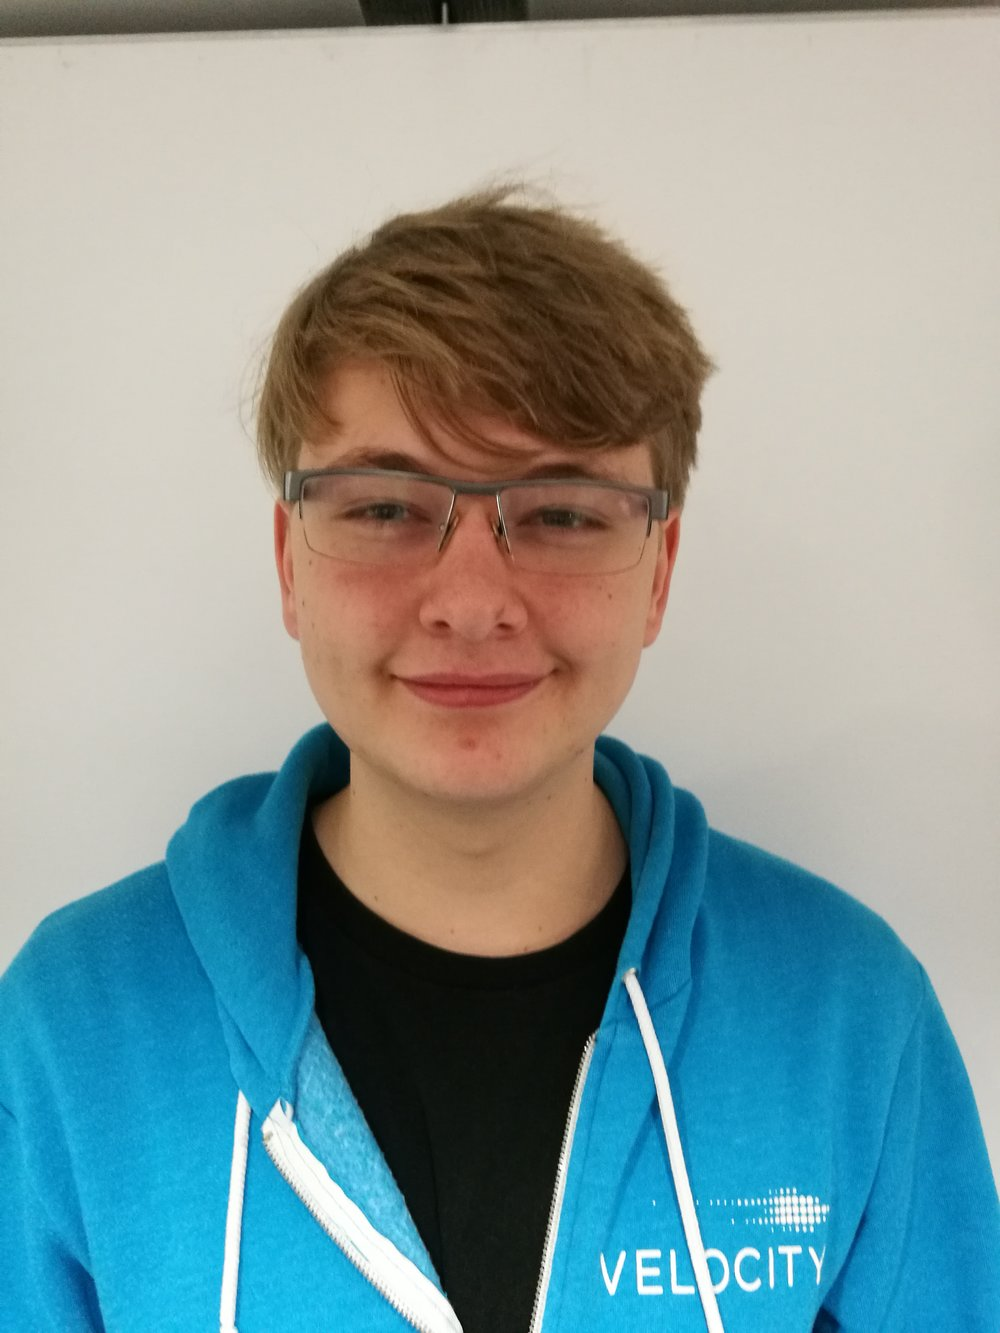 Thomas joined us in 2017 as an intern from the University of Waterloo, Canada, where he is a BASC candidate in Nanotechnology Engineering